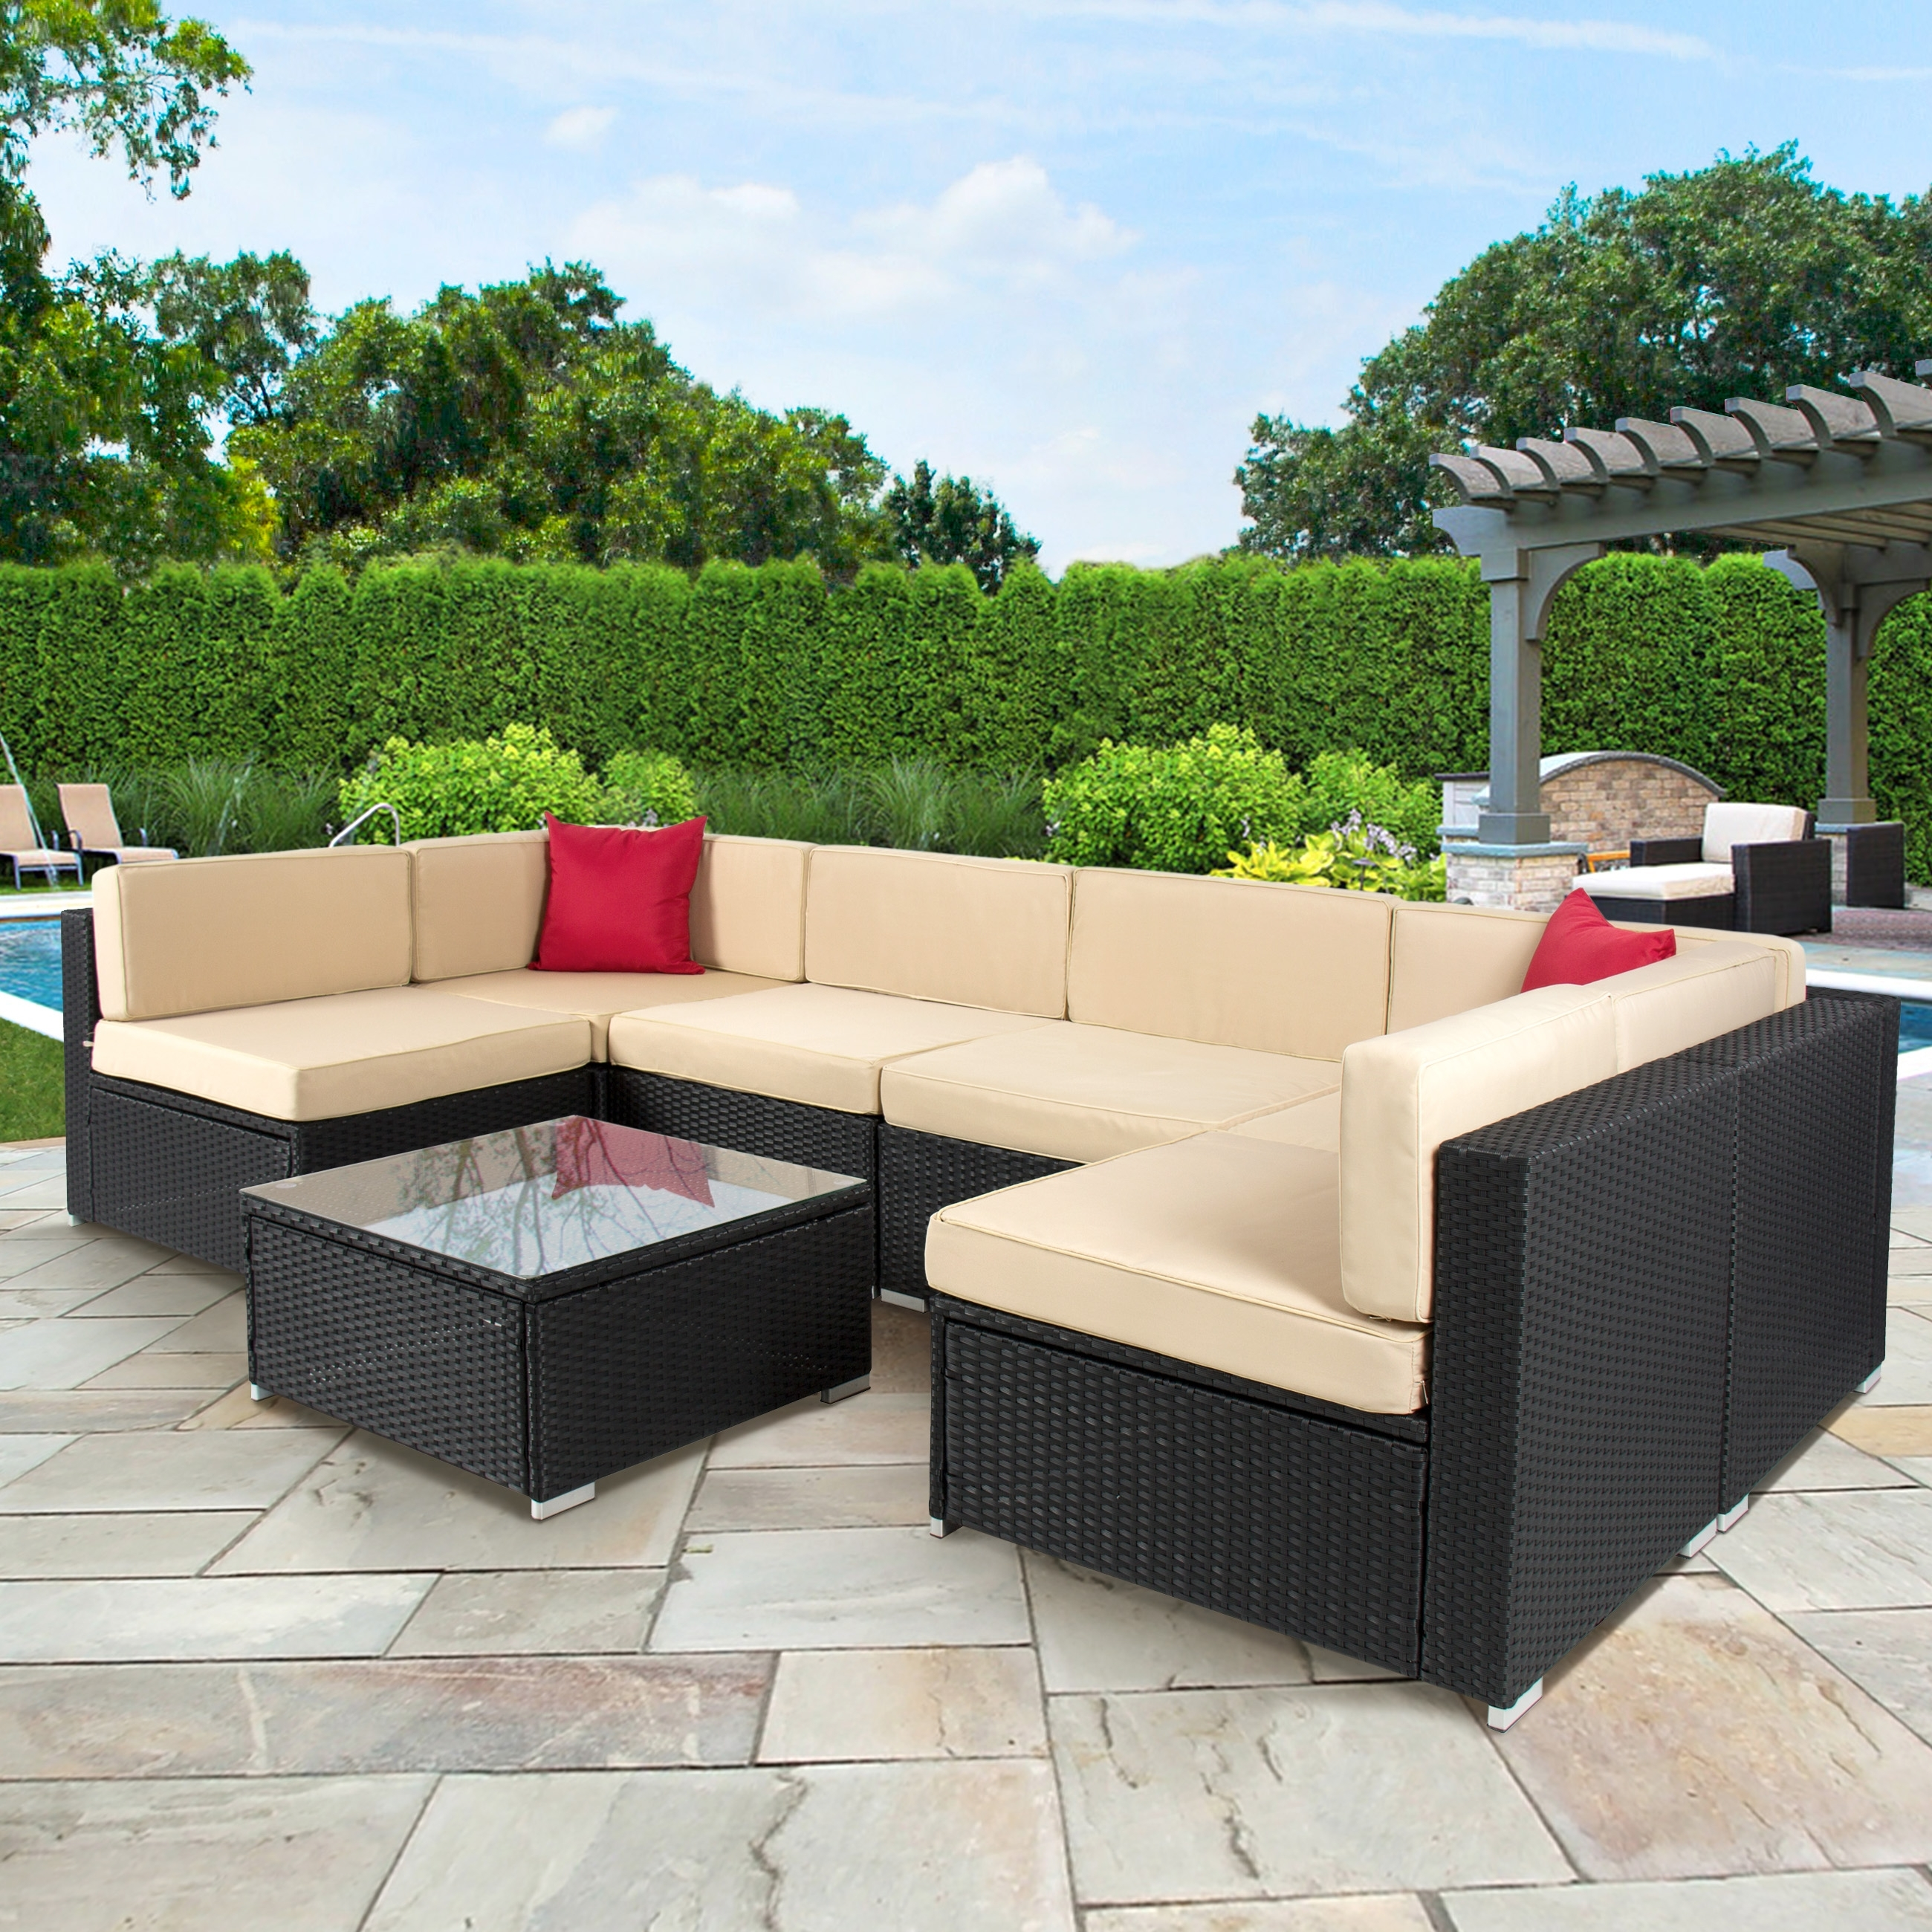 Most Current Patio Sofas Intended For Sofa : Curved Outdoor Furniture Sofa Outdoor Furniture Sofa Set (View 10 of 15)